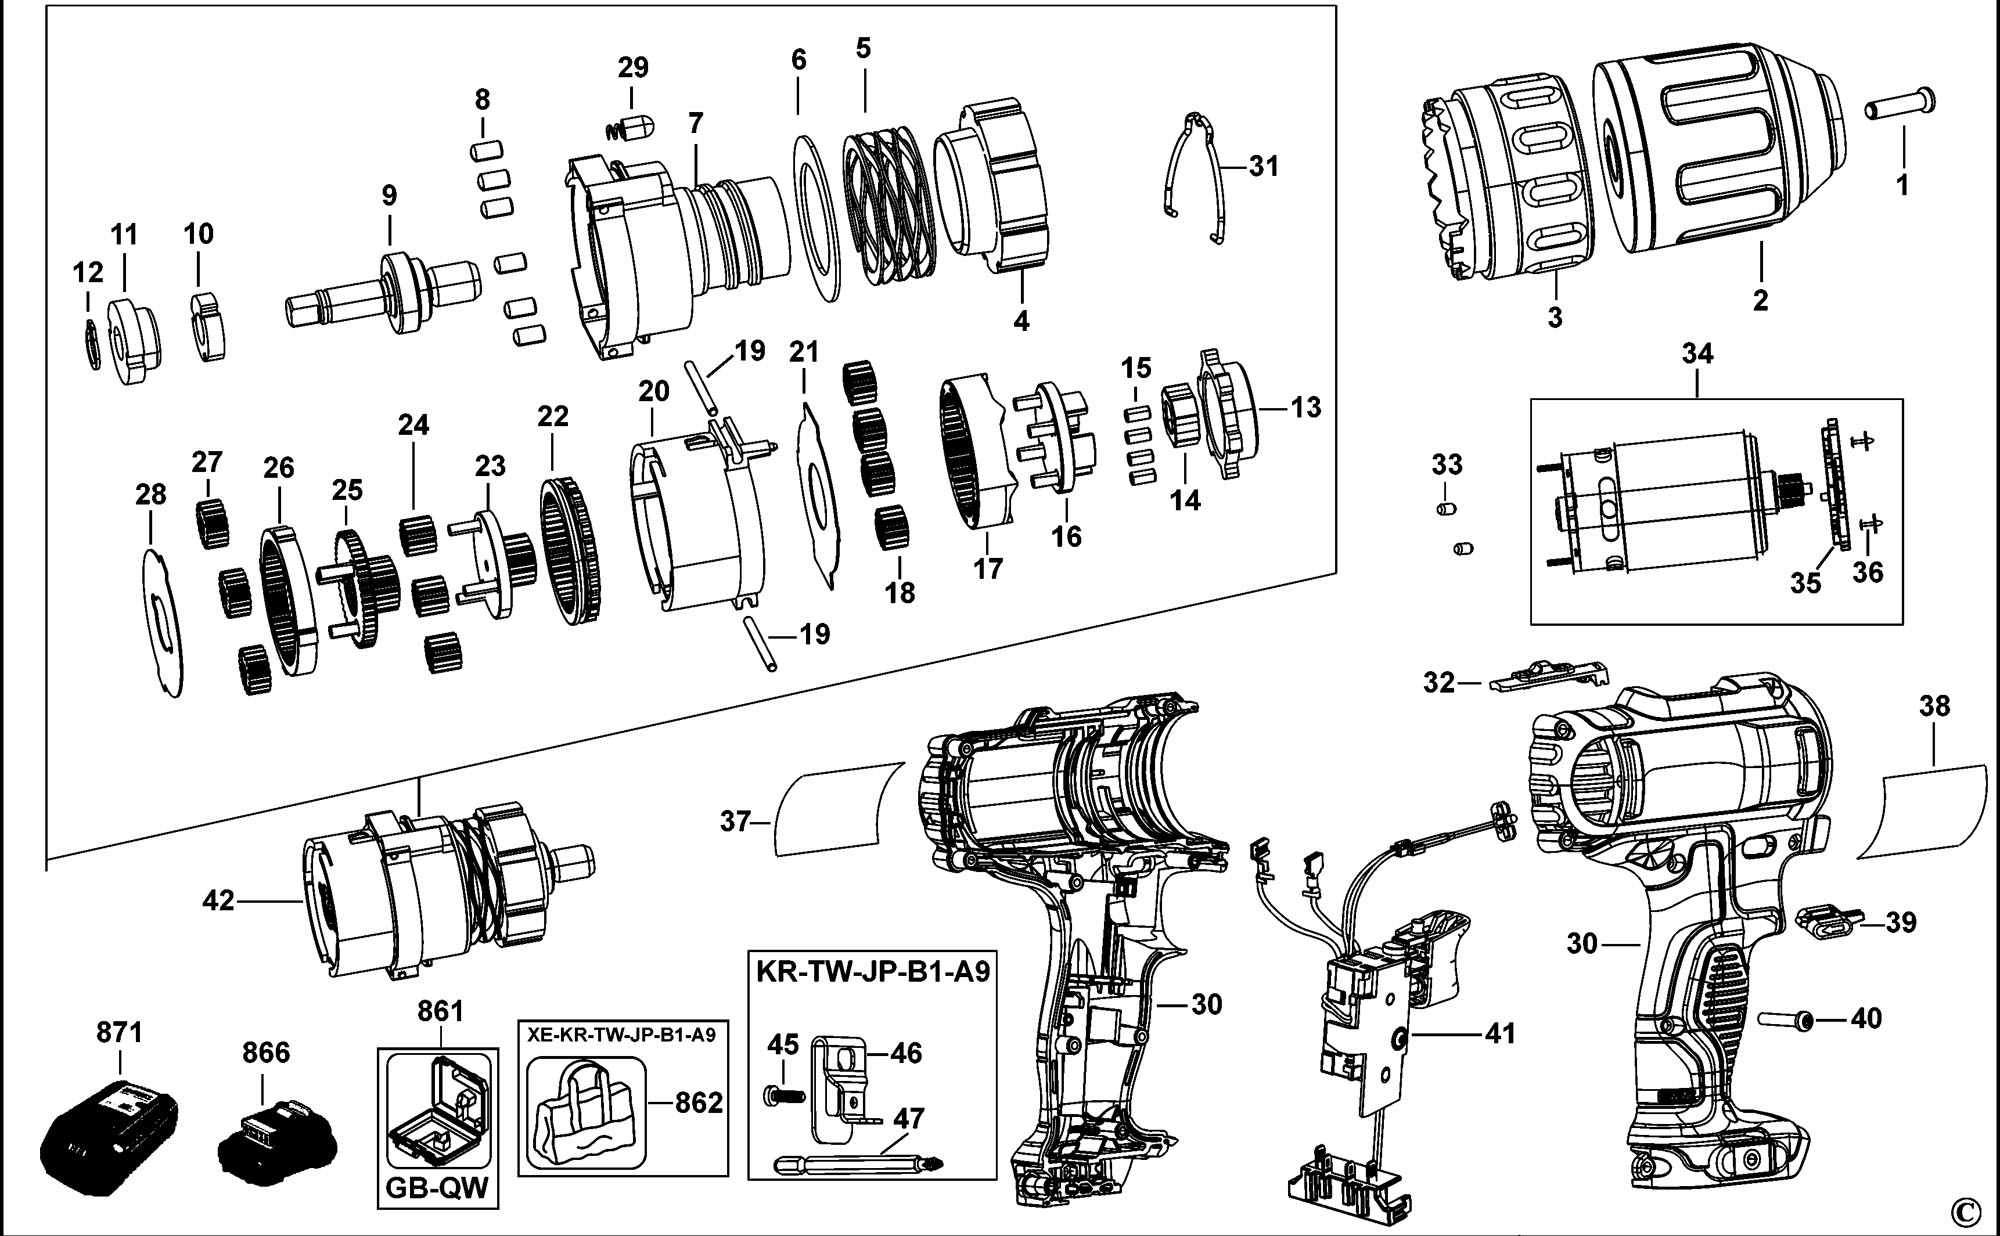 de walt dg6000 generator wiring diagram de walt power tool wiring diagrams spares for dewalt dcd710 cordless drill (type 1) spare ... #1